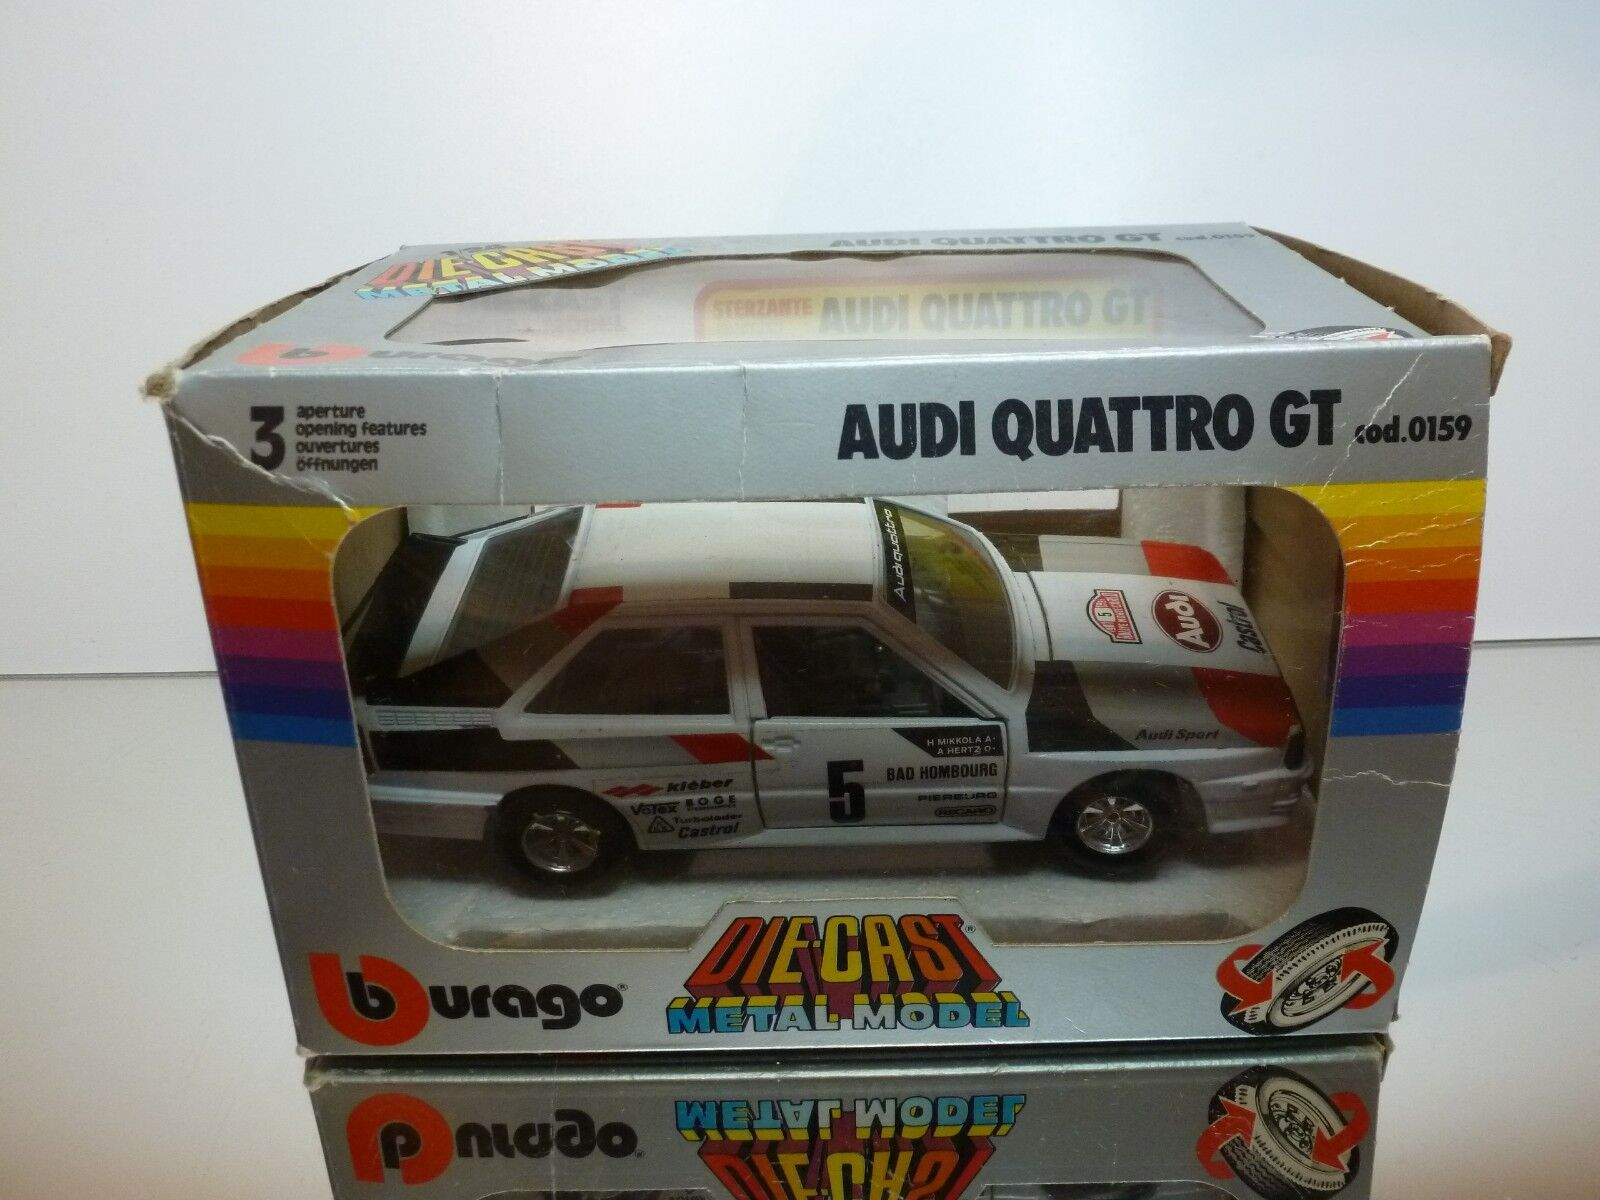 BBURAGO 0159 AUDI QUATTRO GT MIKKOLA HERTZ - WHITE 1 24 - VERY GOOD IN BOX